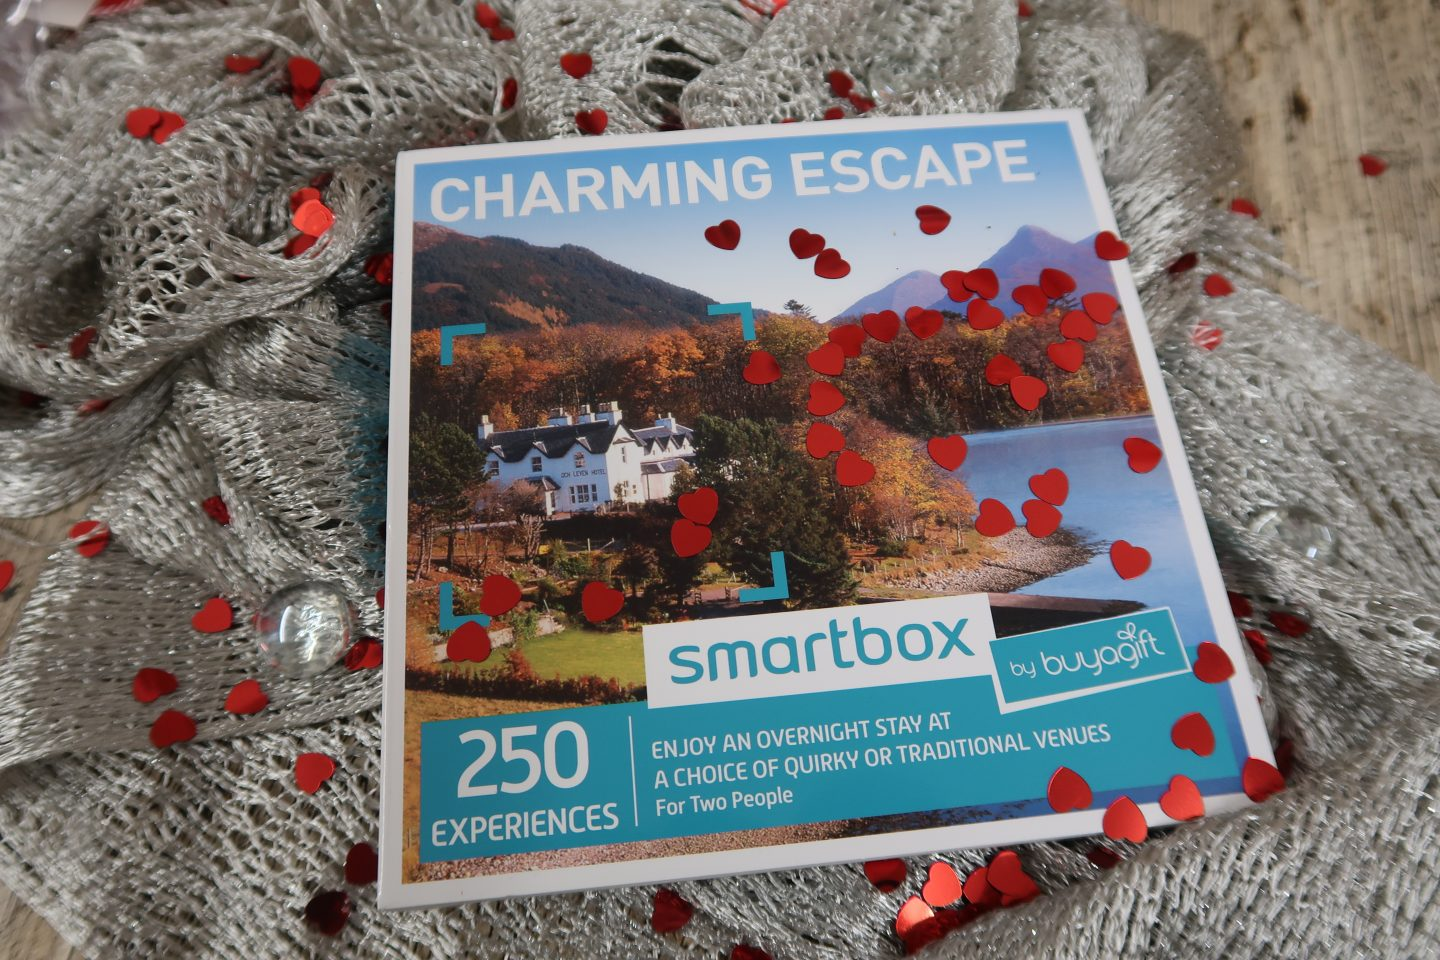 Charming Escape smartbox